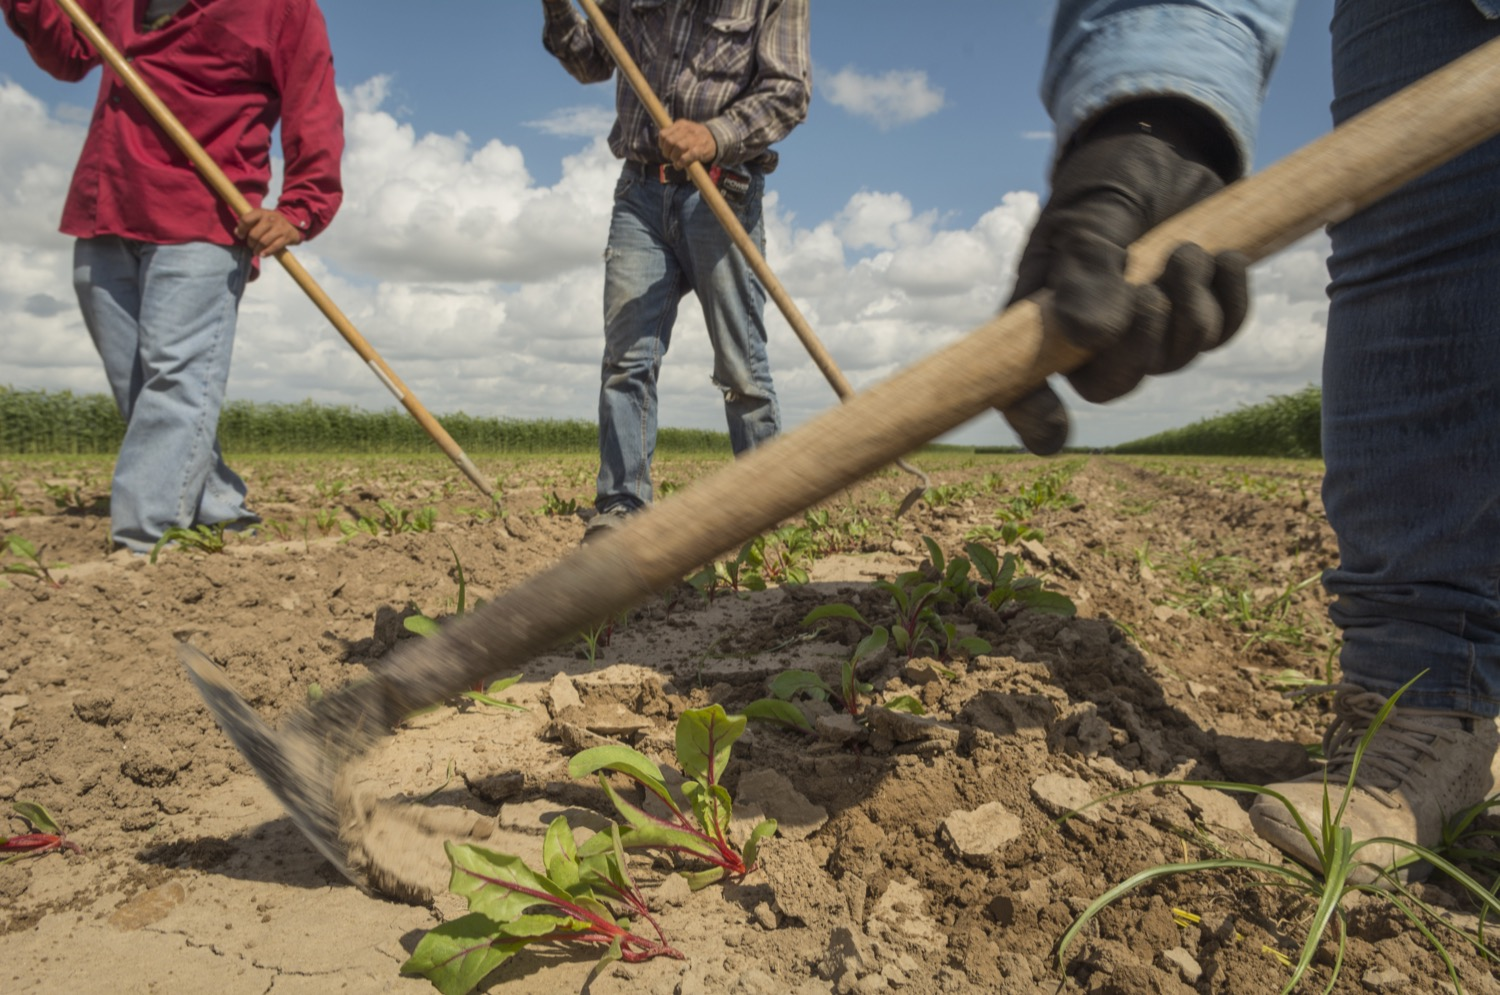 Maria Martinez, right, a field supervisor for Rio Fresh, weeds a field south of Edinburg, Texas. She has worked in the fields of South Texas since she was a kid, picking and hoeing alongside her parents.©2018/Jerry Redfern